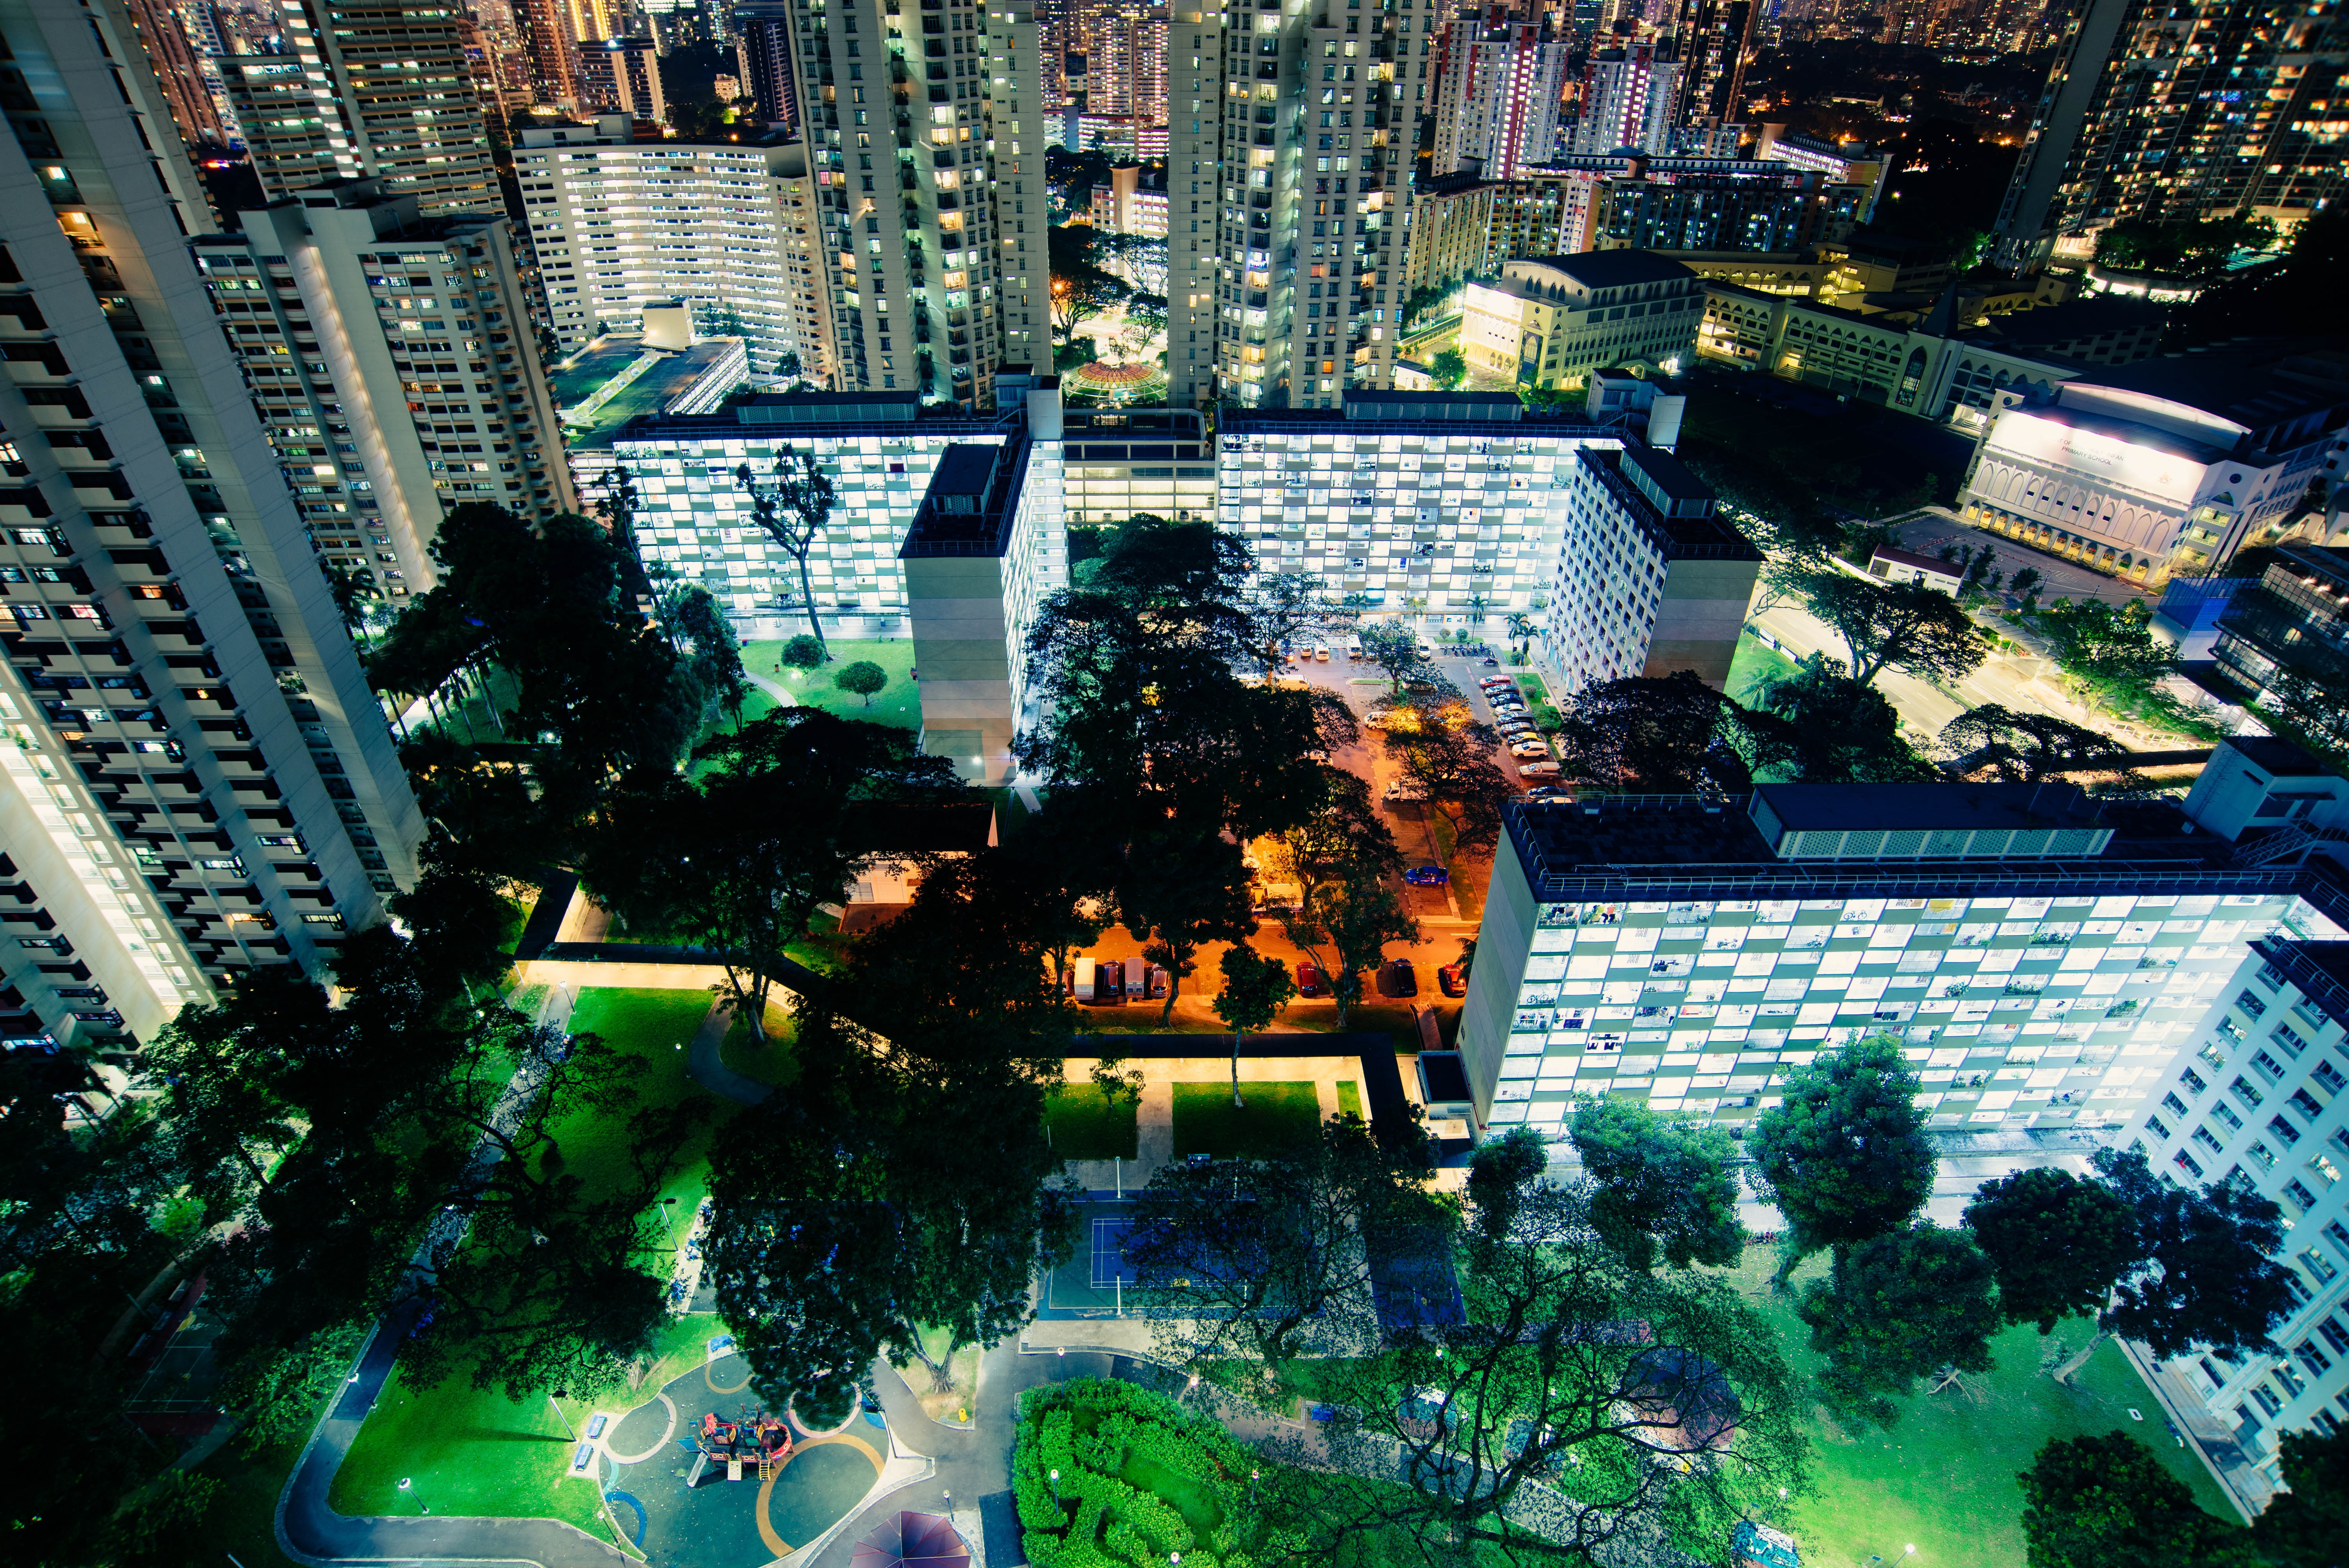 bird's eye view photography of lighted city buildings